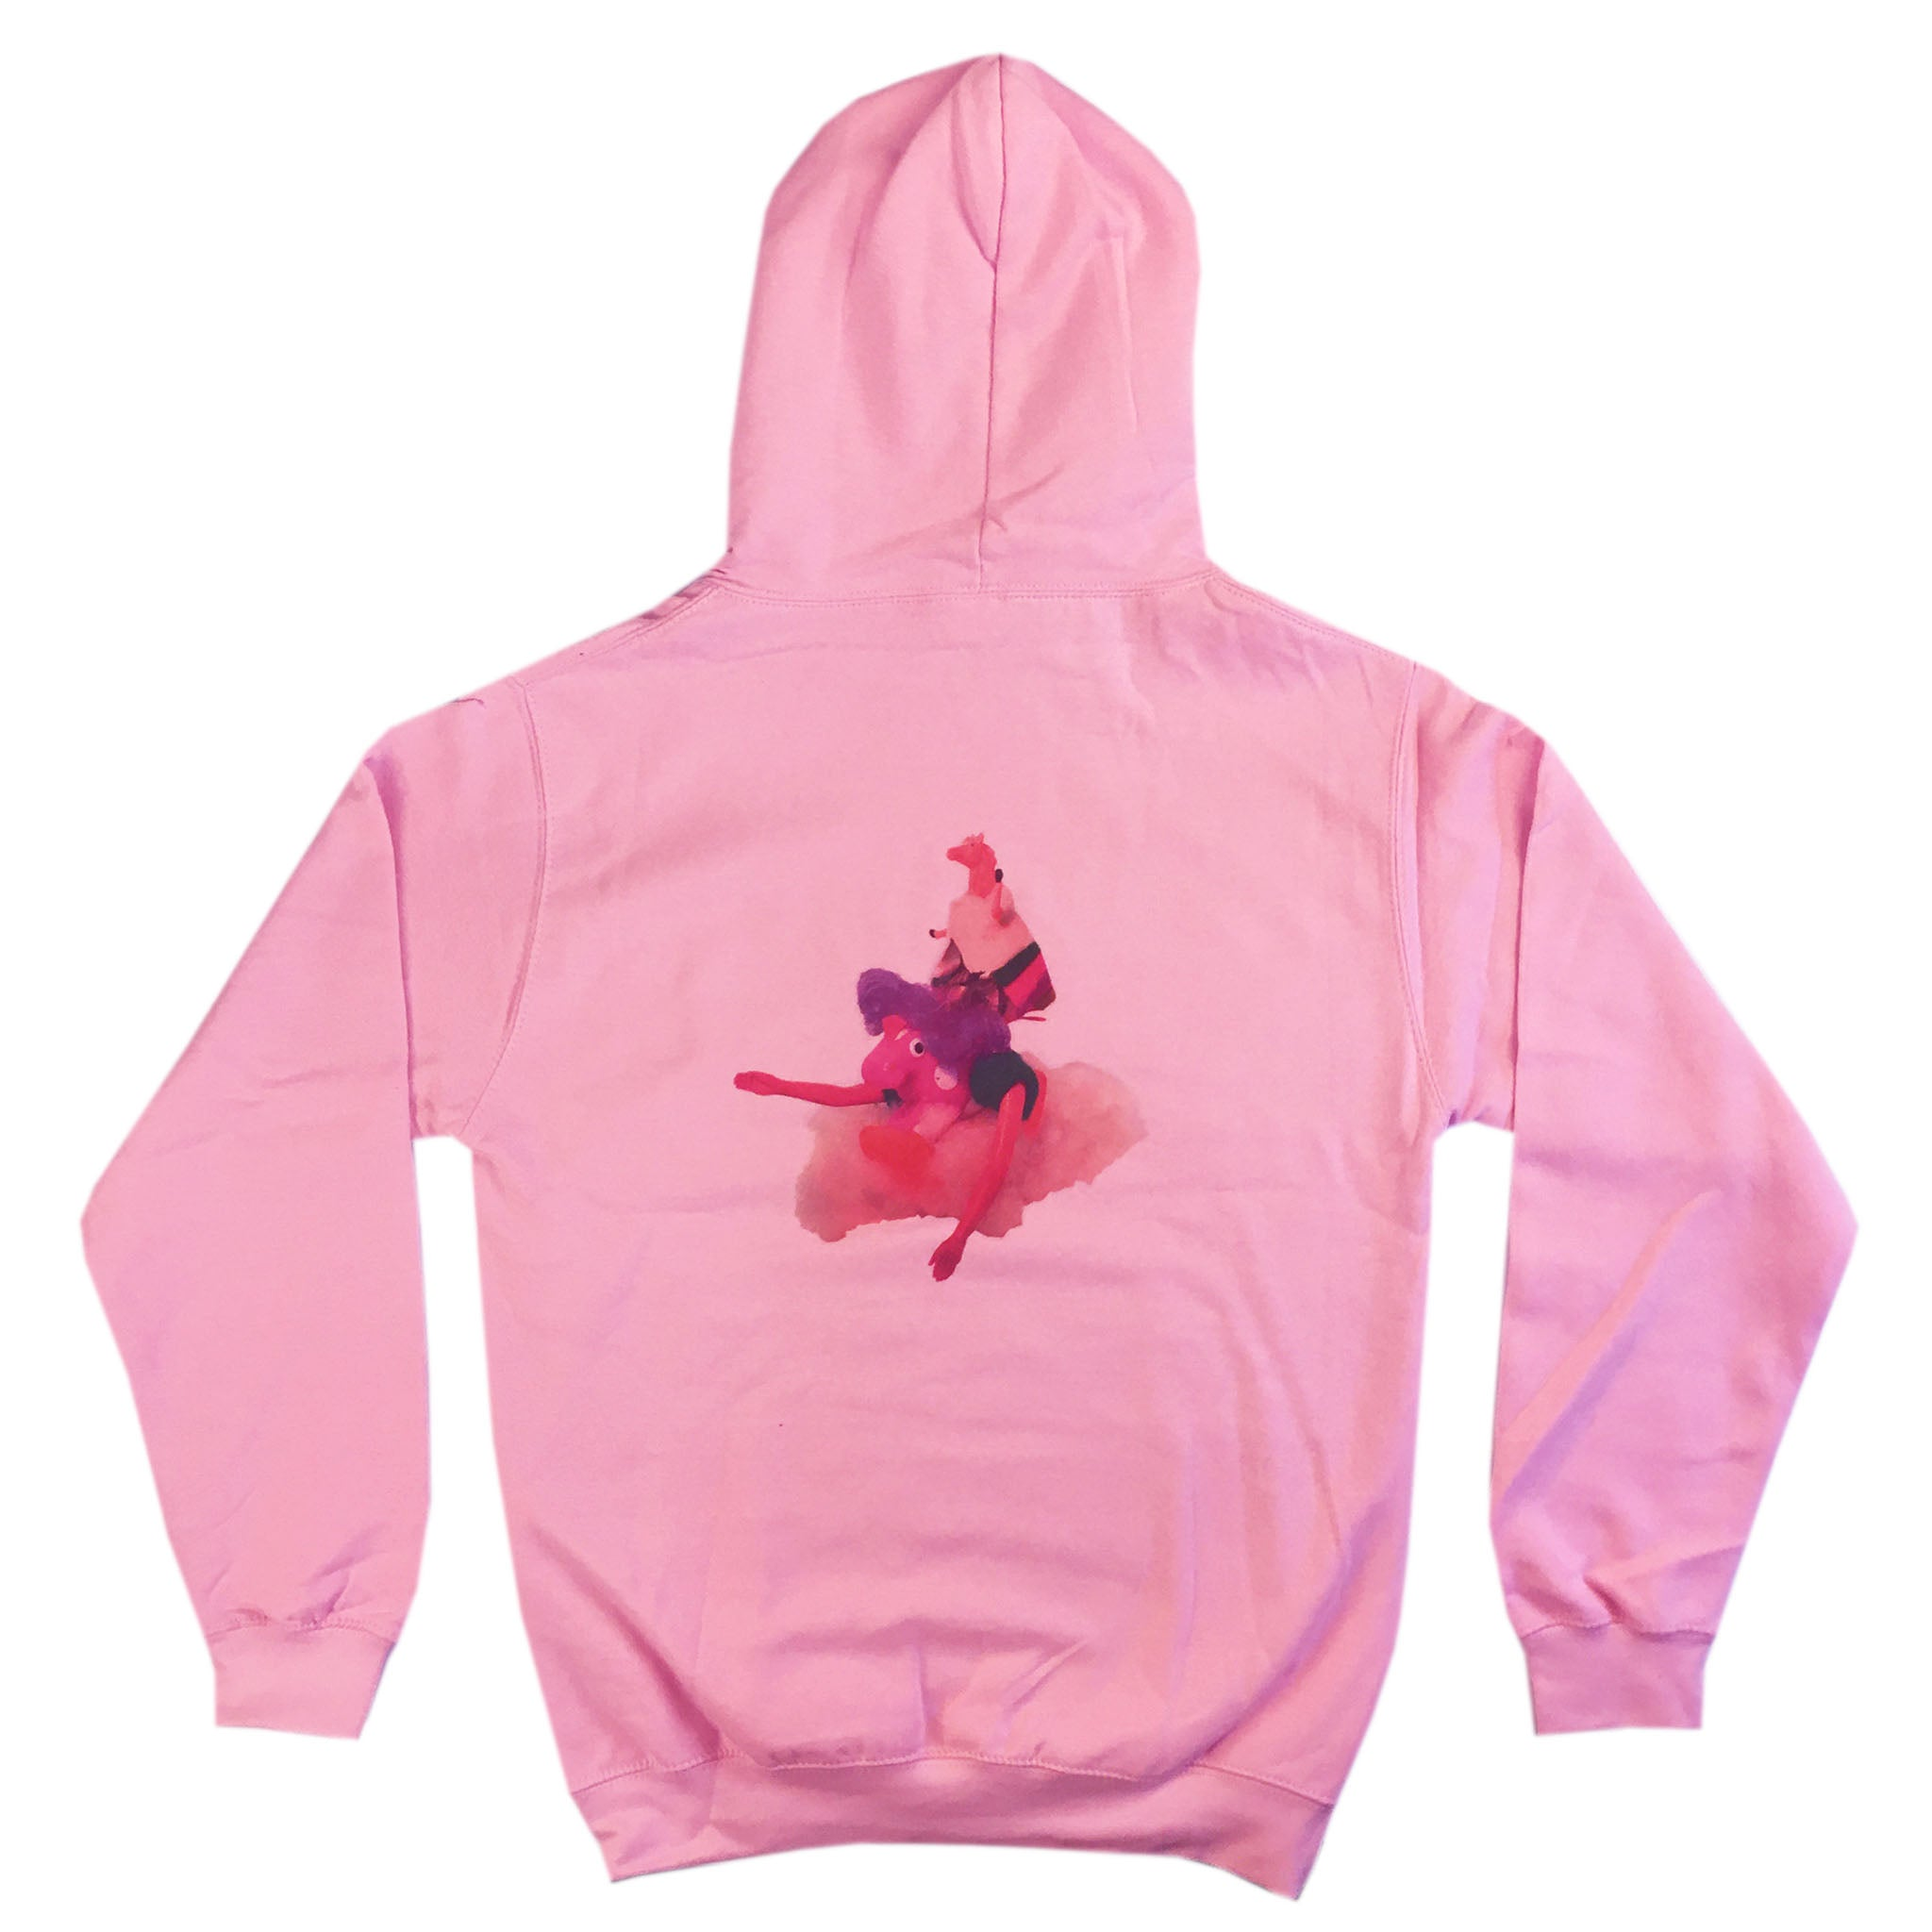 Dream Cloud - Adult Hoodie - Baby Pink